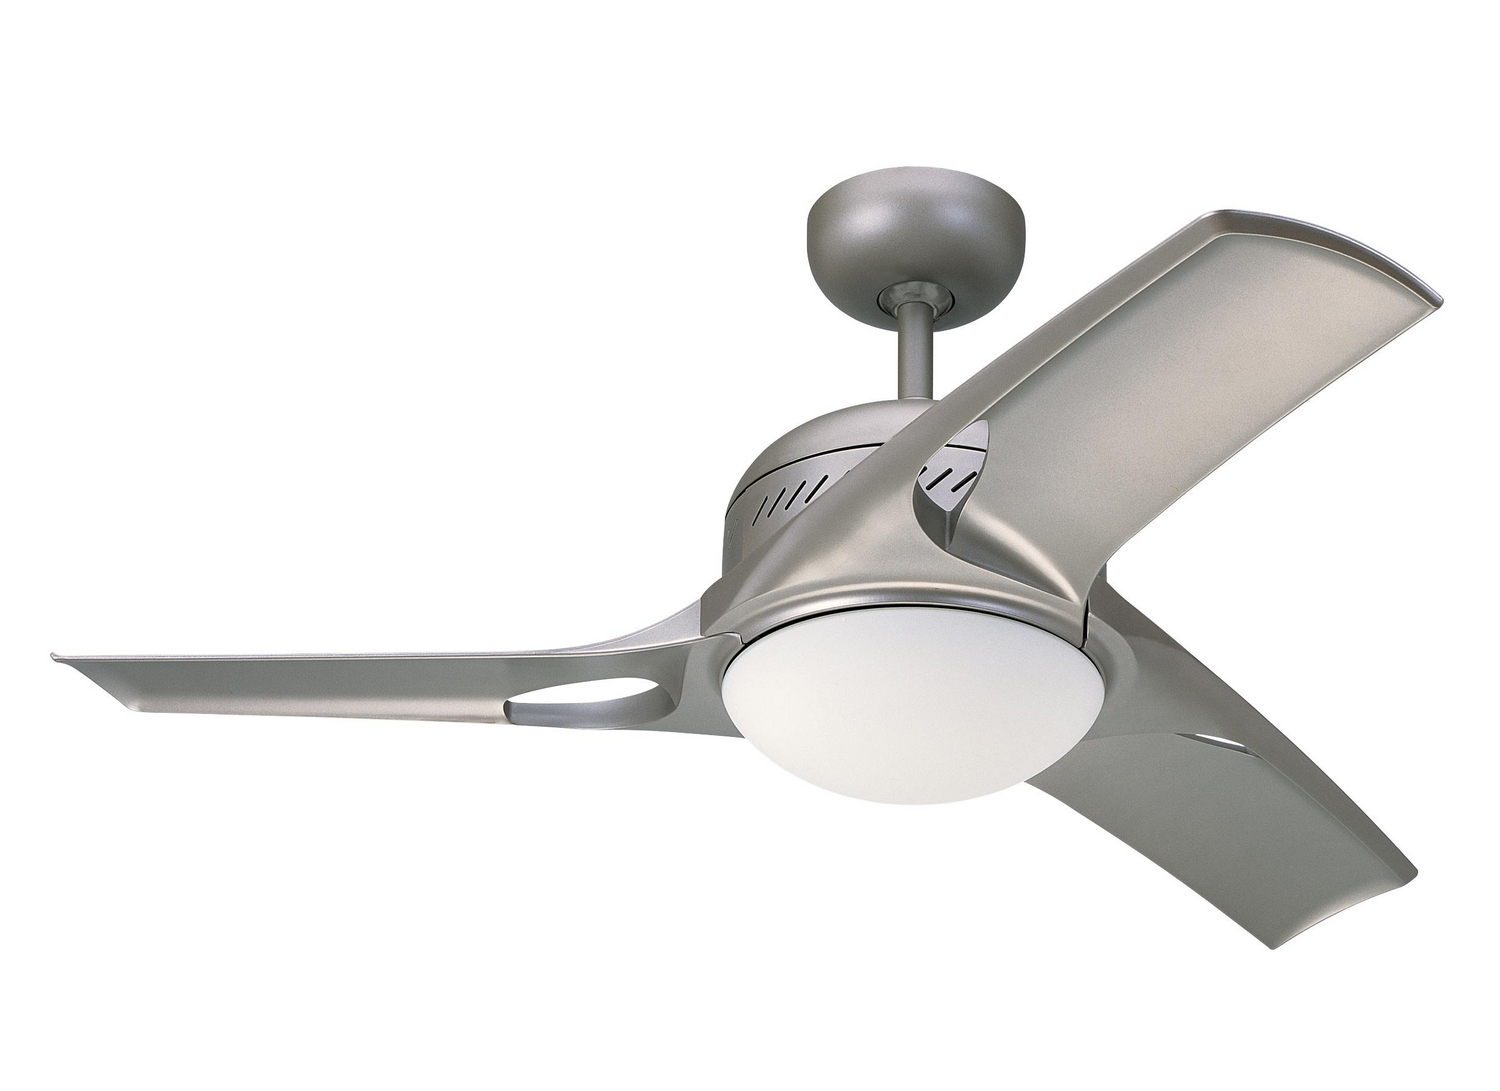 38 inchCeiling Fan from the Mach Two collection by Monte Carlo 3MTR38TMO L